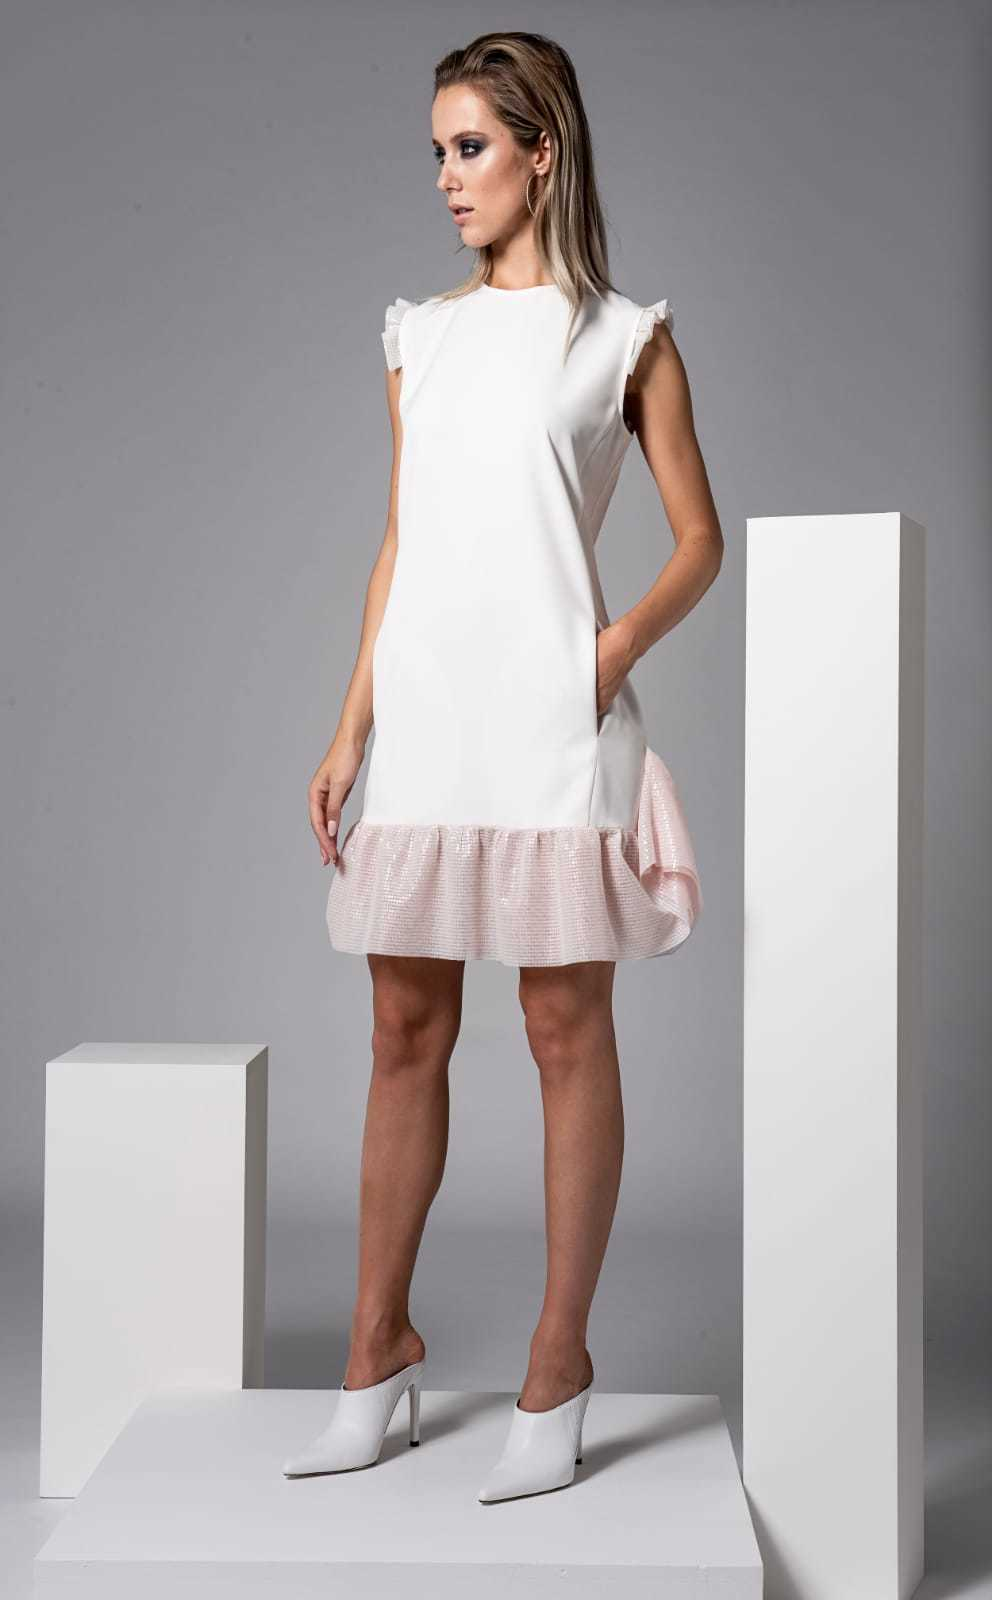 Lopez Dress in Ivory with Pink Trims CARKKSISDRLOPEZ